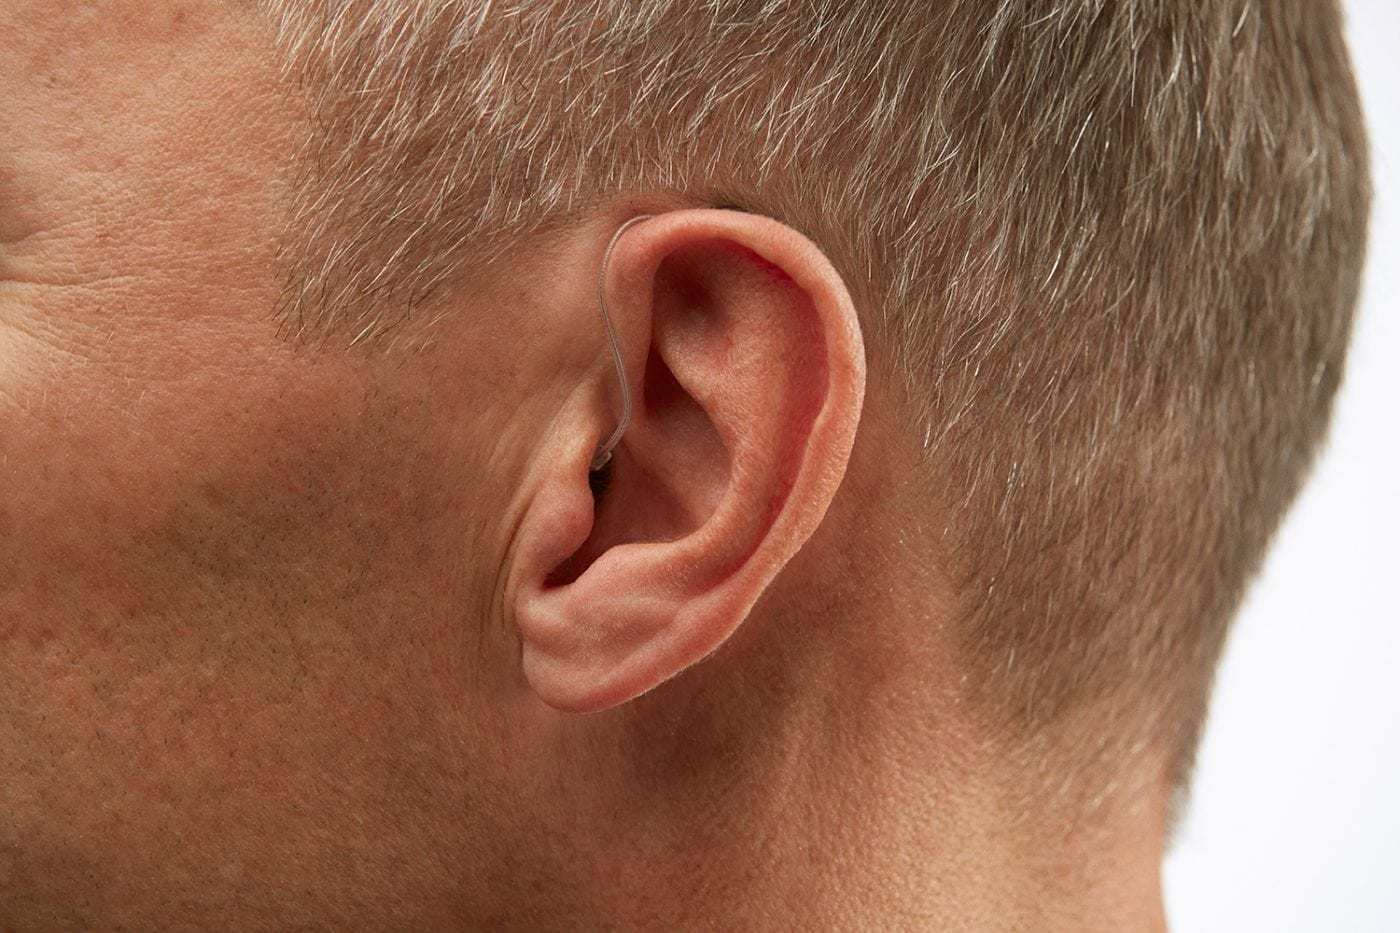 close-up of ear with barely visible hearing aid